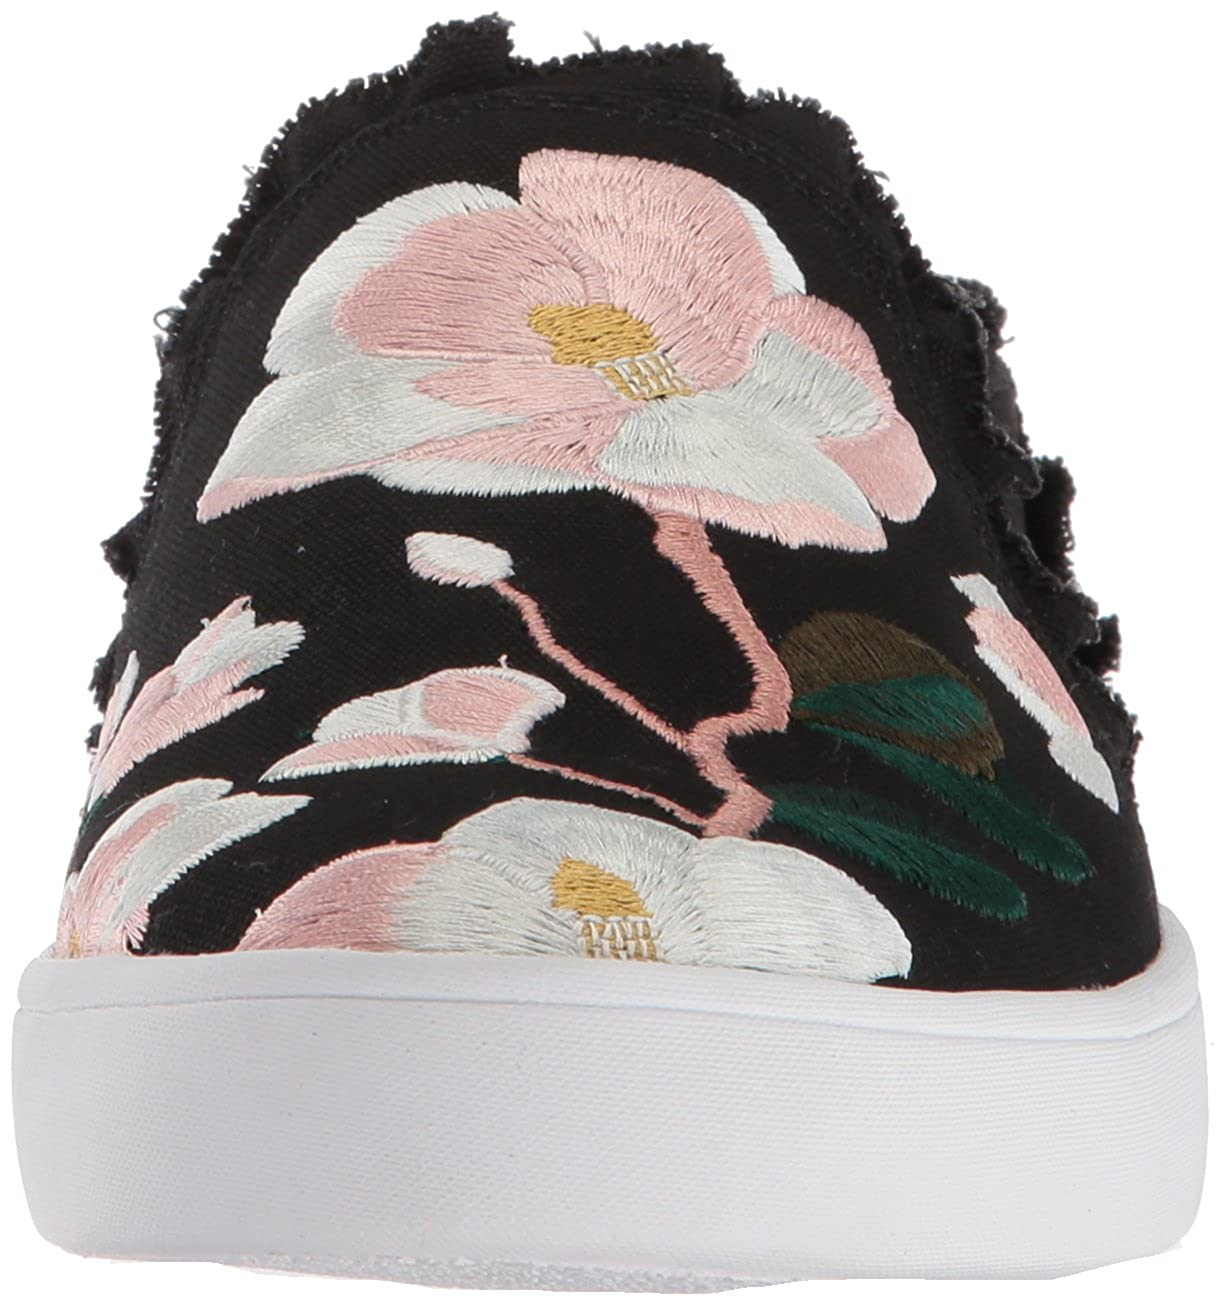 484a47eac993 Amazon.com  Kate Spade New York Women s Leonie Sneaker  Shoes